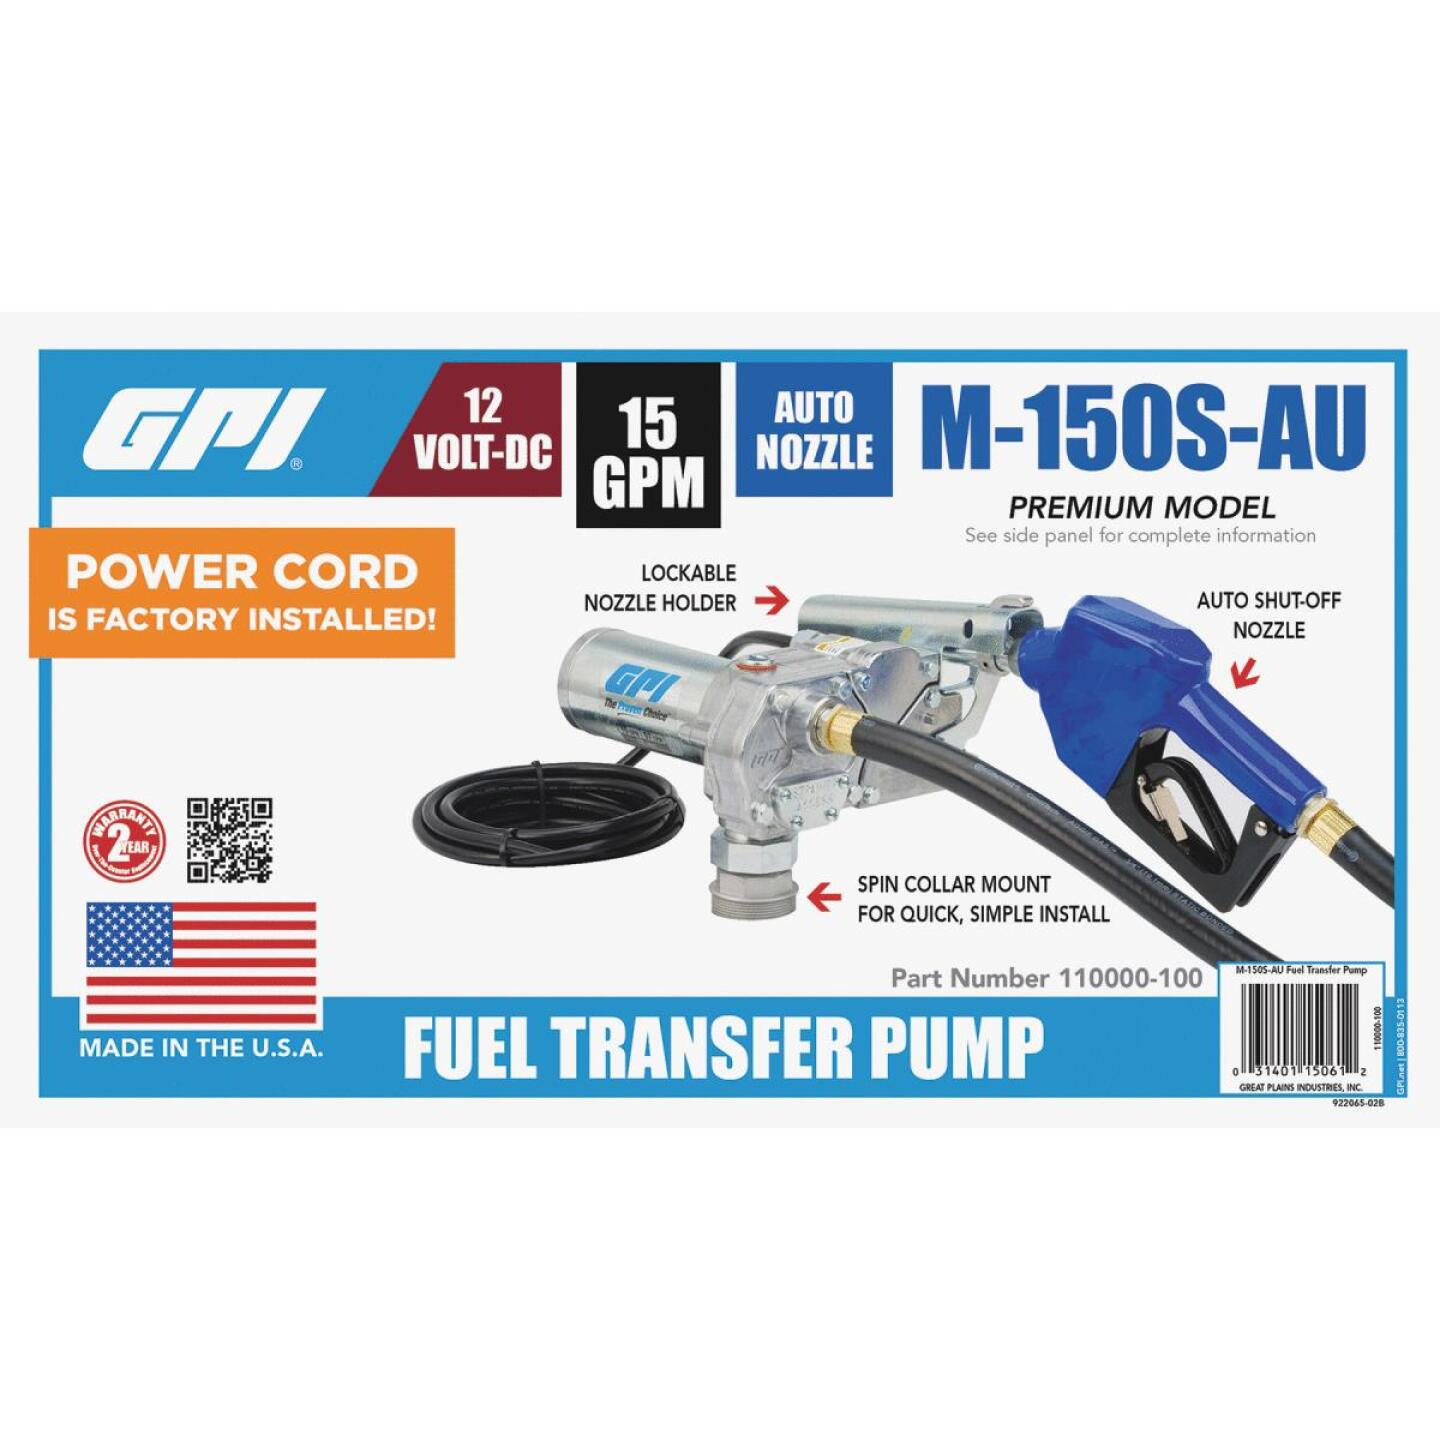 GPI 12V DC, 15 GPM Automatic Fuel Transfer Pump Image 2